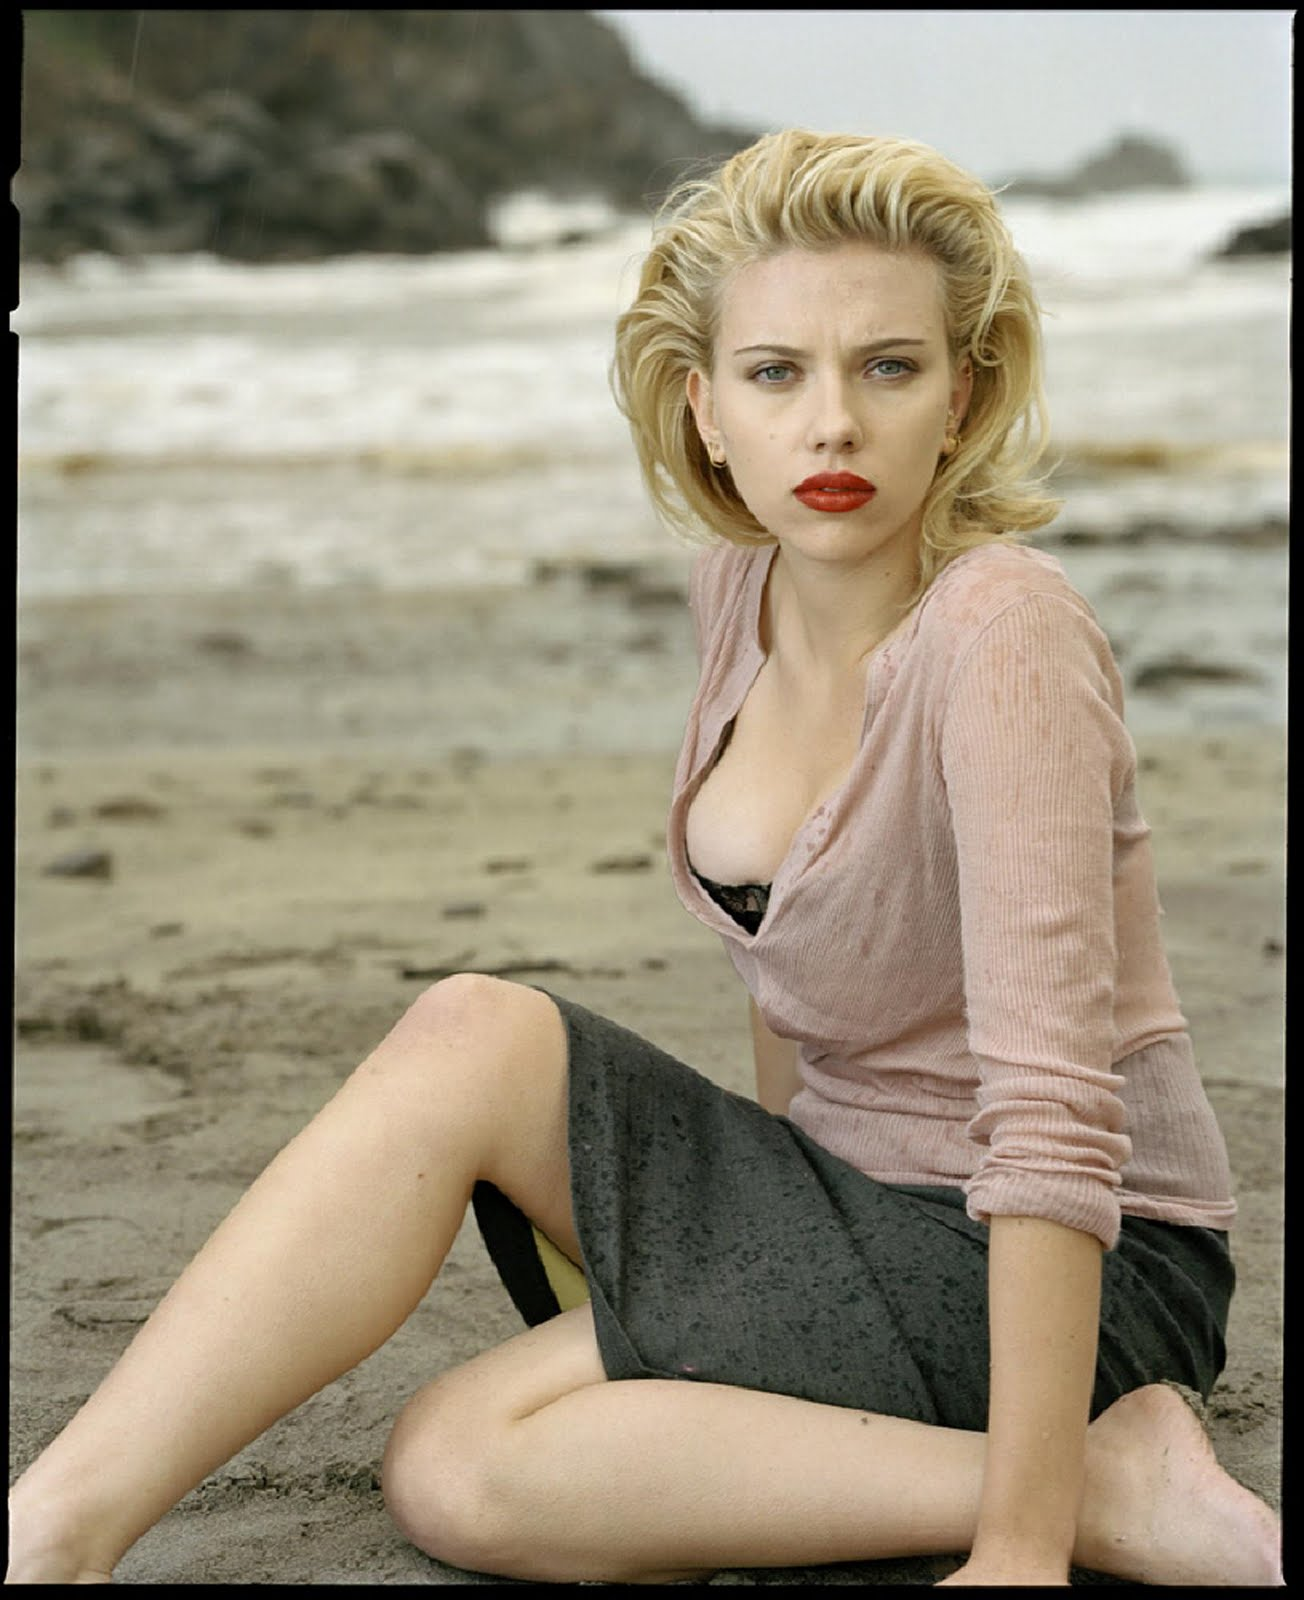 The Man Cave Scarlett Johansson